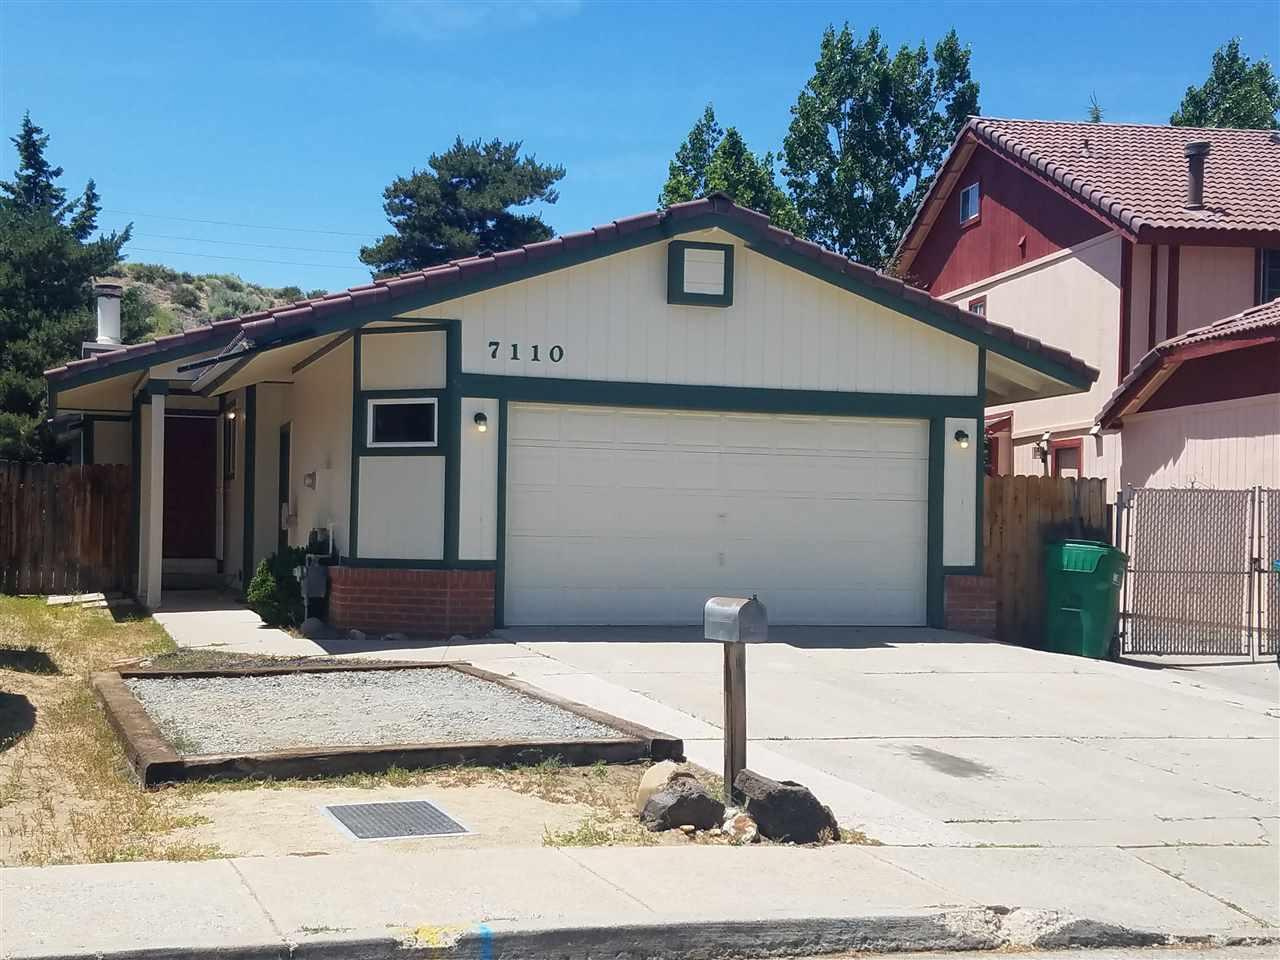 7110 Peppermint Dr - Photo 1